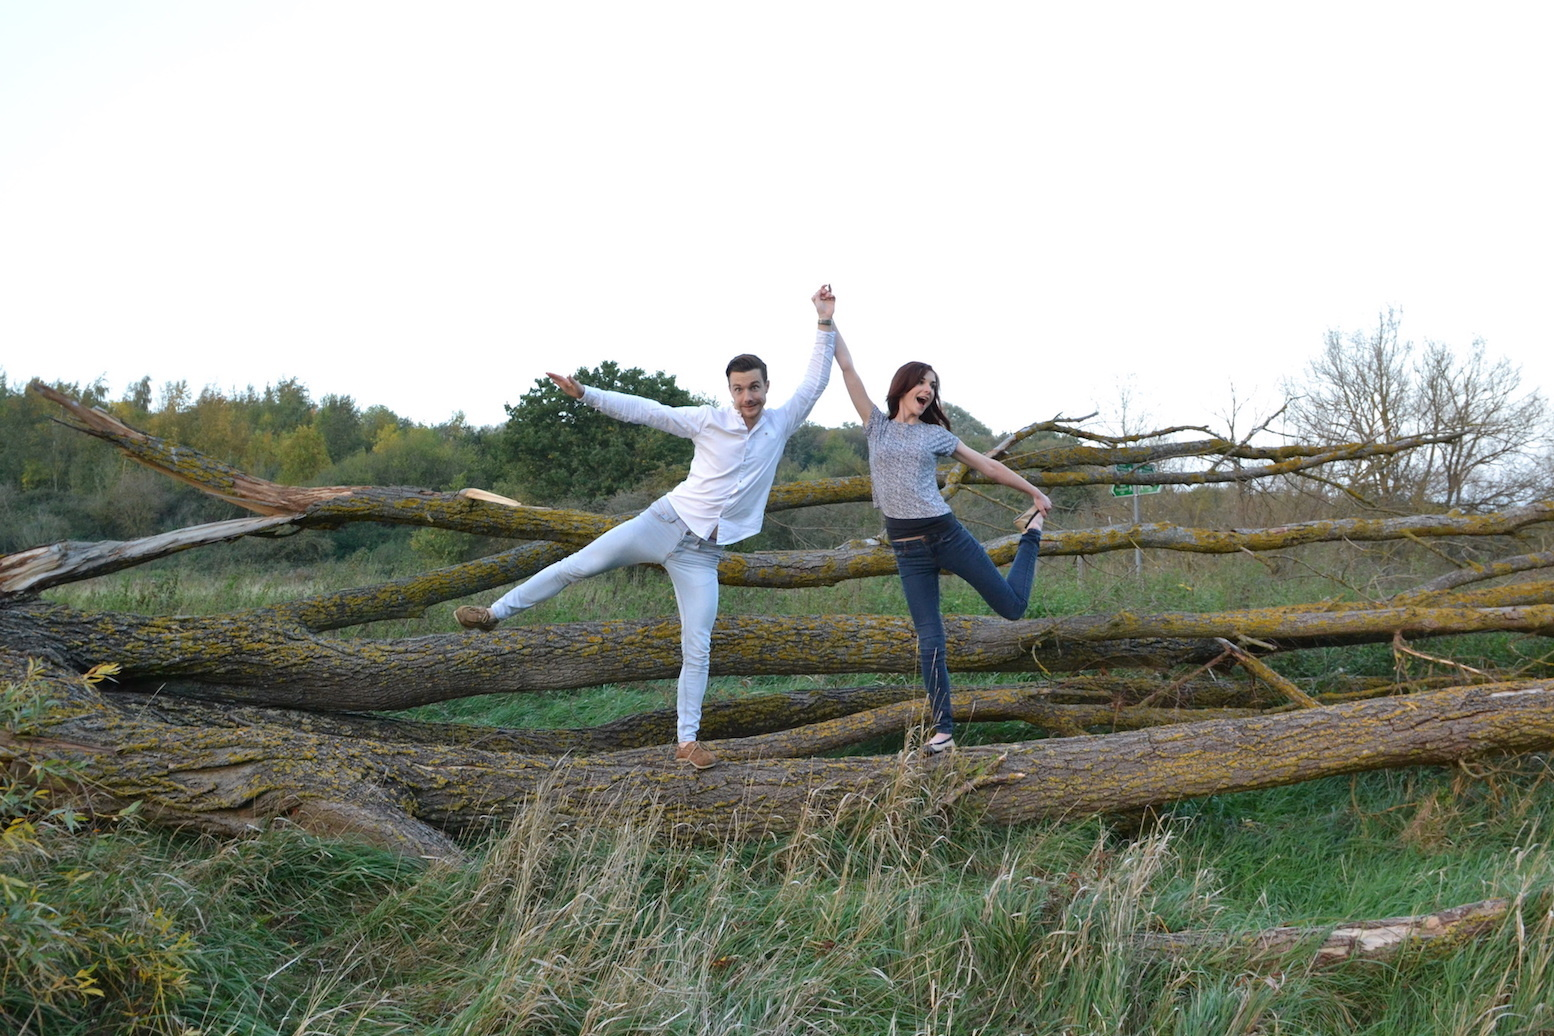 Man and woman striking silly pose by trees